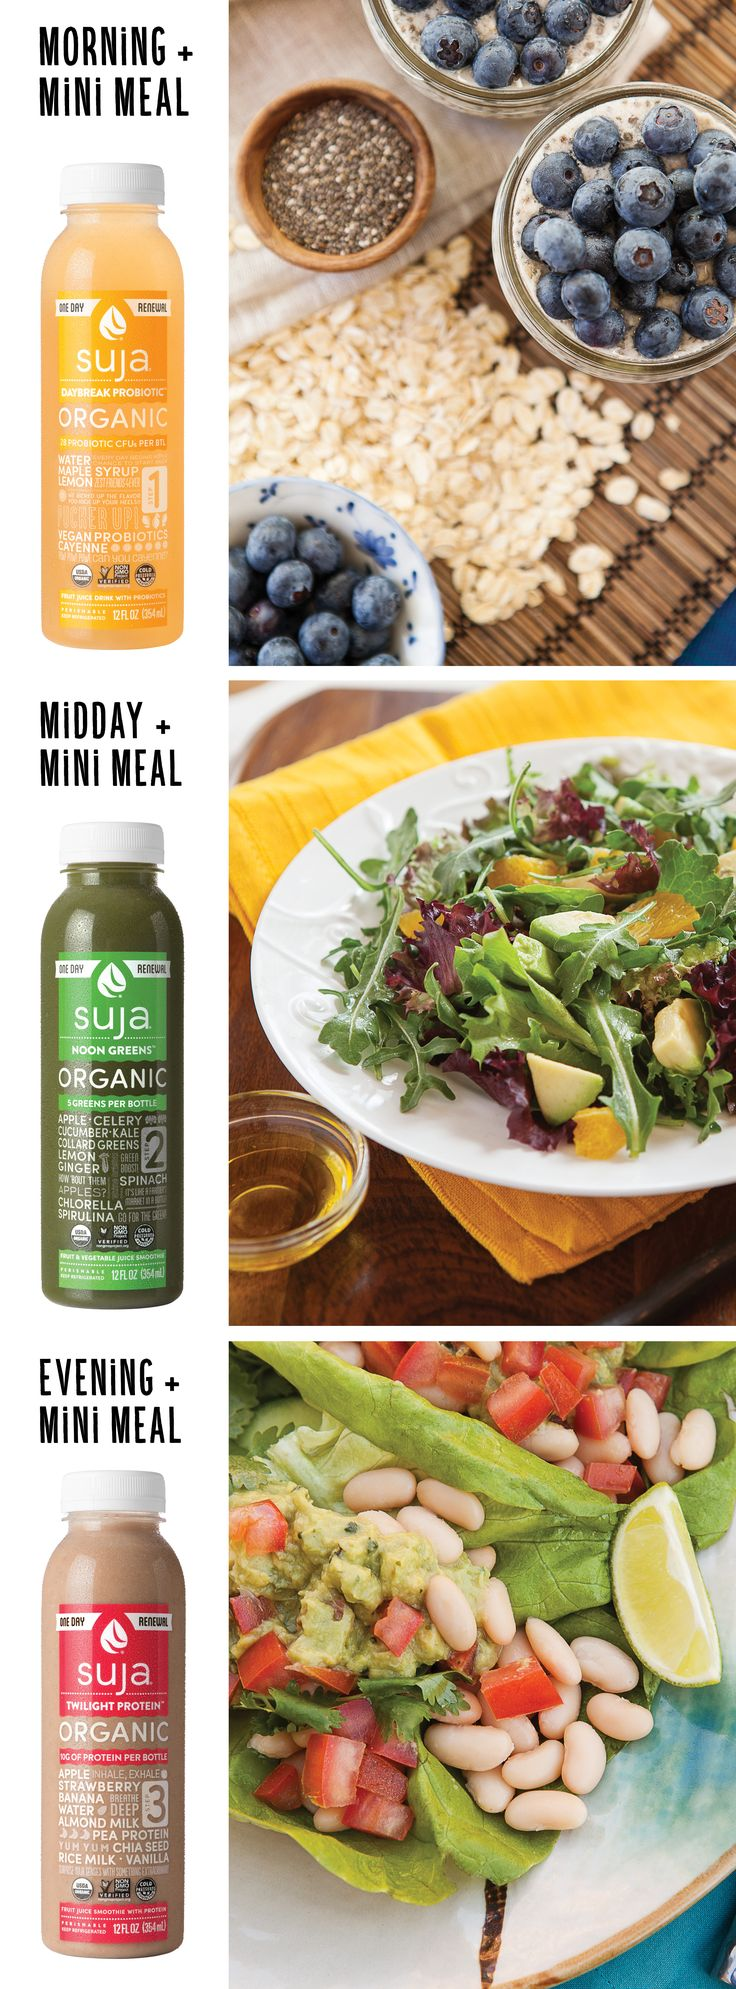 Get back on track with the Suja Organic 1-Day Renewal! The program pairs 3 delicious drinks with a whole food meal plan that's easy to follow. Start the day with Daybreak Probiotic, a spicy and sweet lemonade boosted with vegan probiotics. For lunch enjoy Noon Greens, a nutrient-dense green juice with a refreshing finish. End the day with Twilight Protein, a filling strawberry almond milk powered with vegan pea protein. Available nationwide - find a store near you!